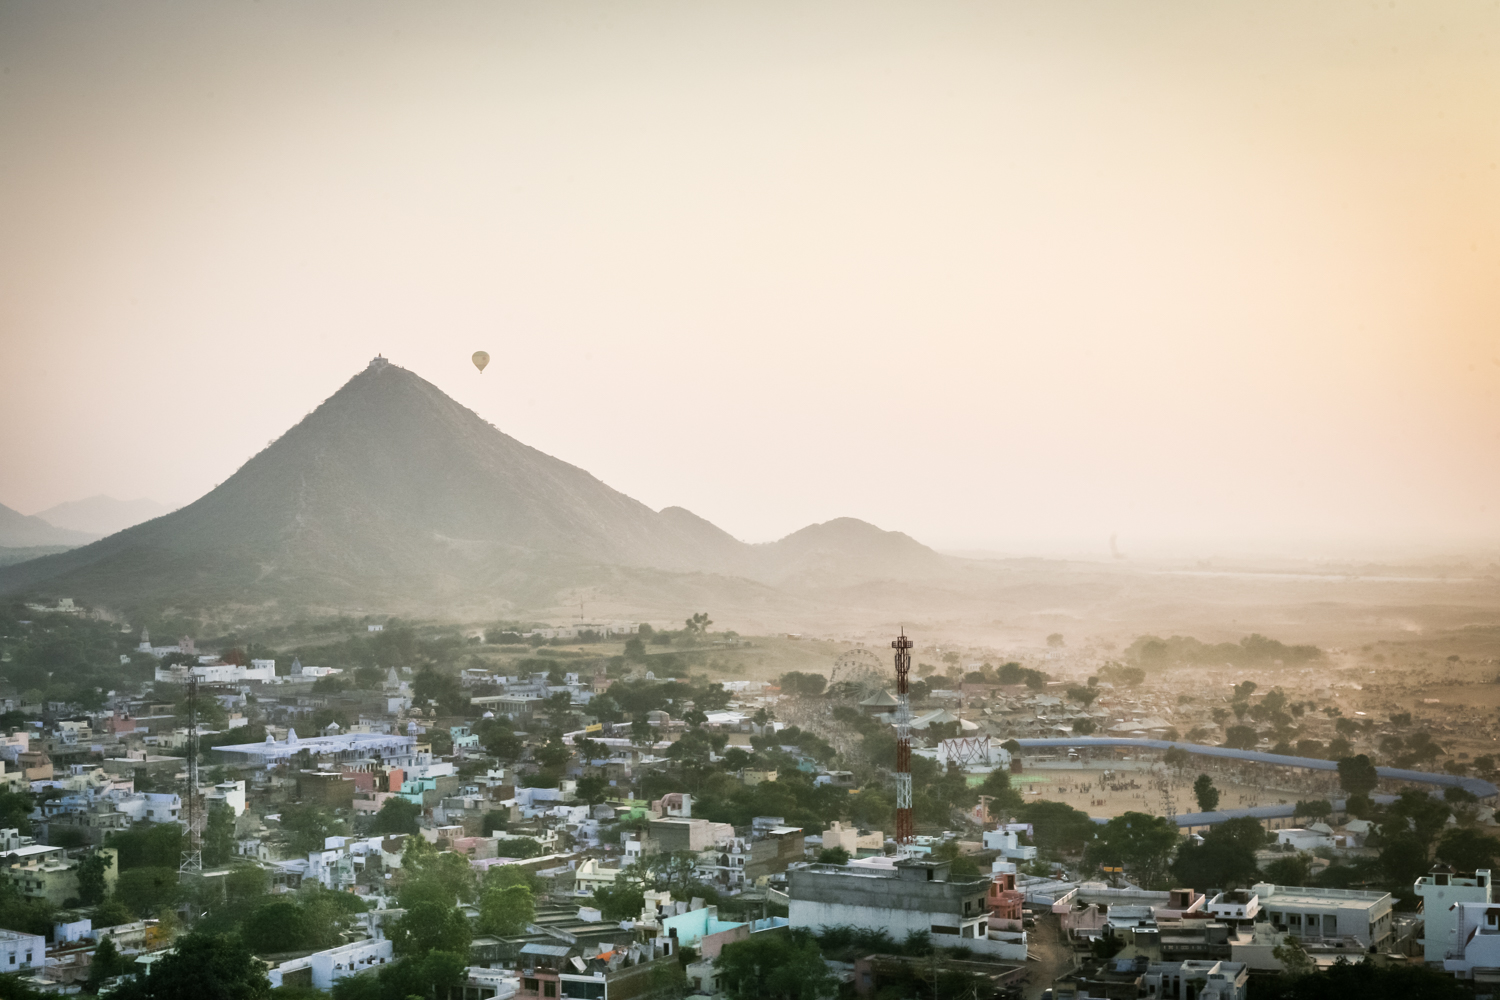 pushkar-india-hot-air-balloon.jpg